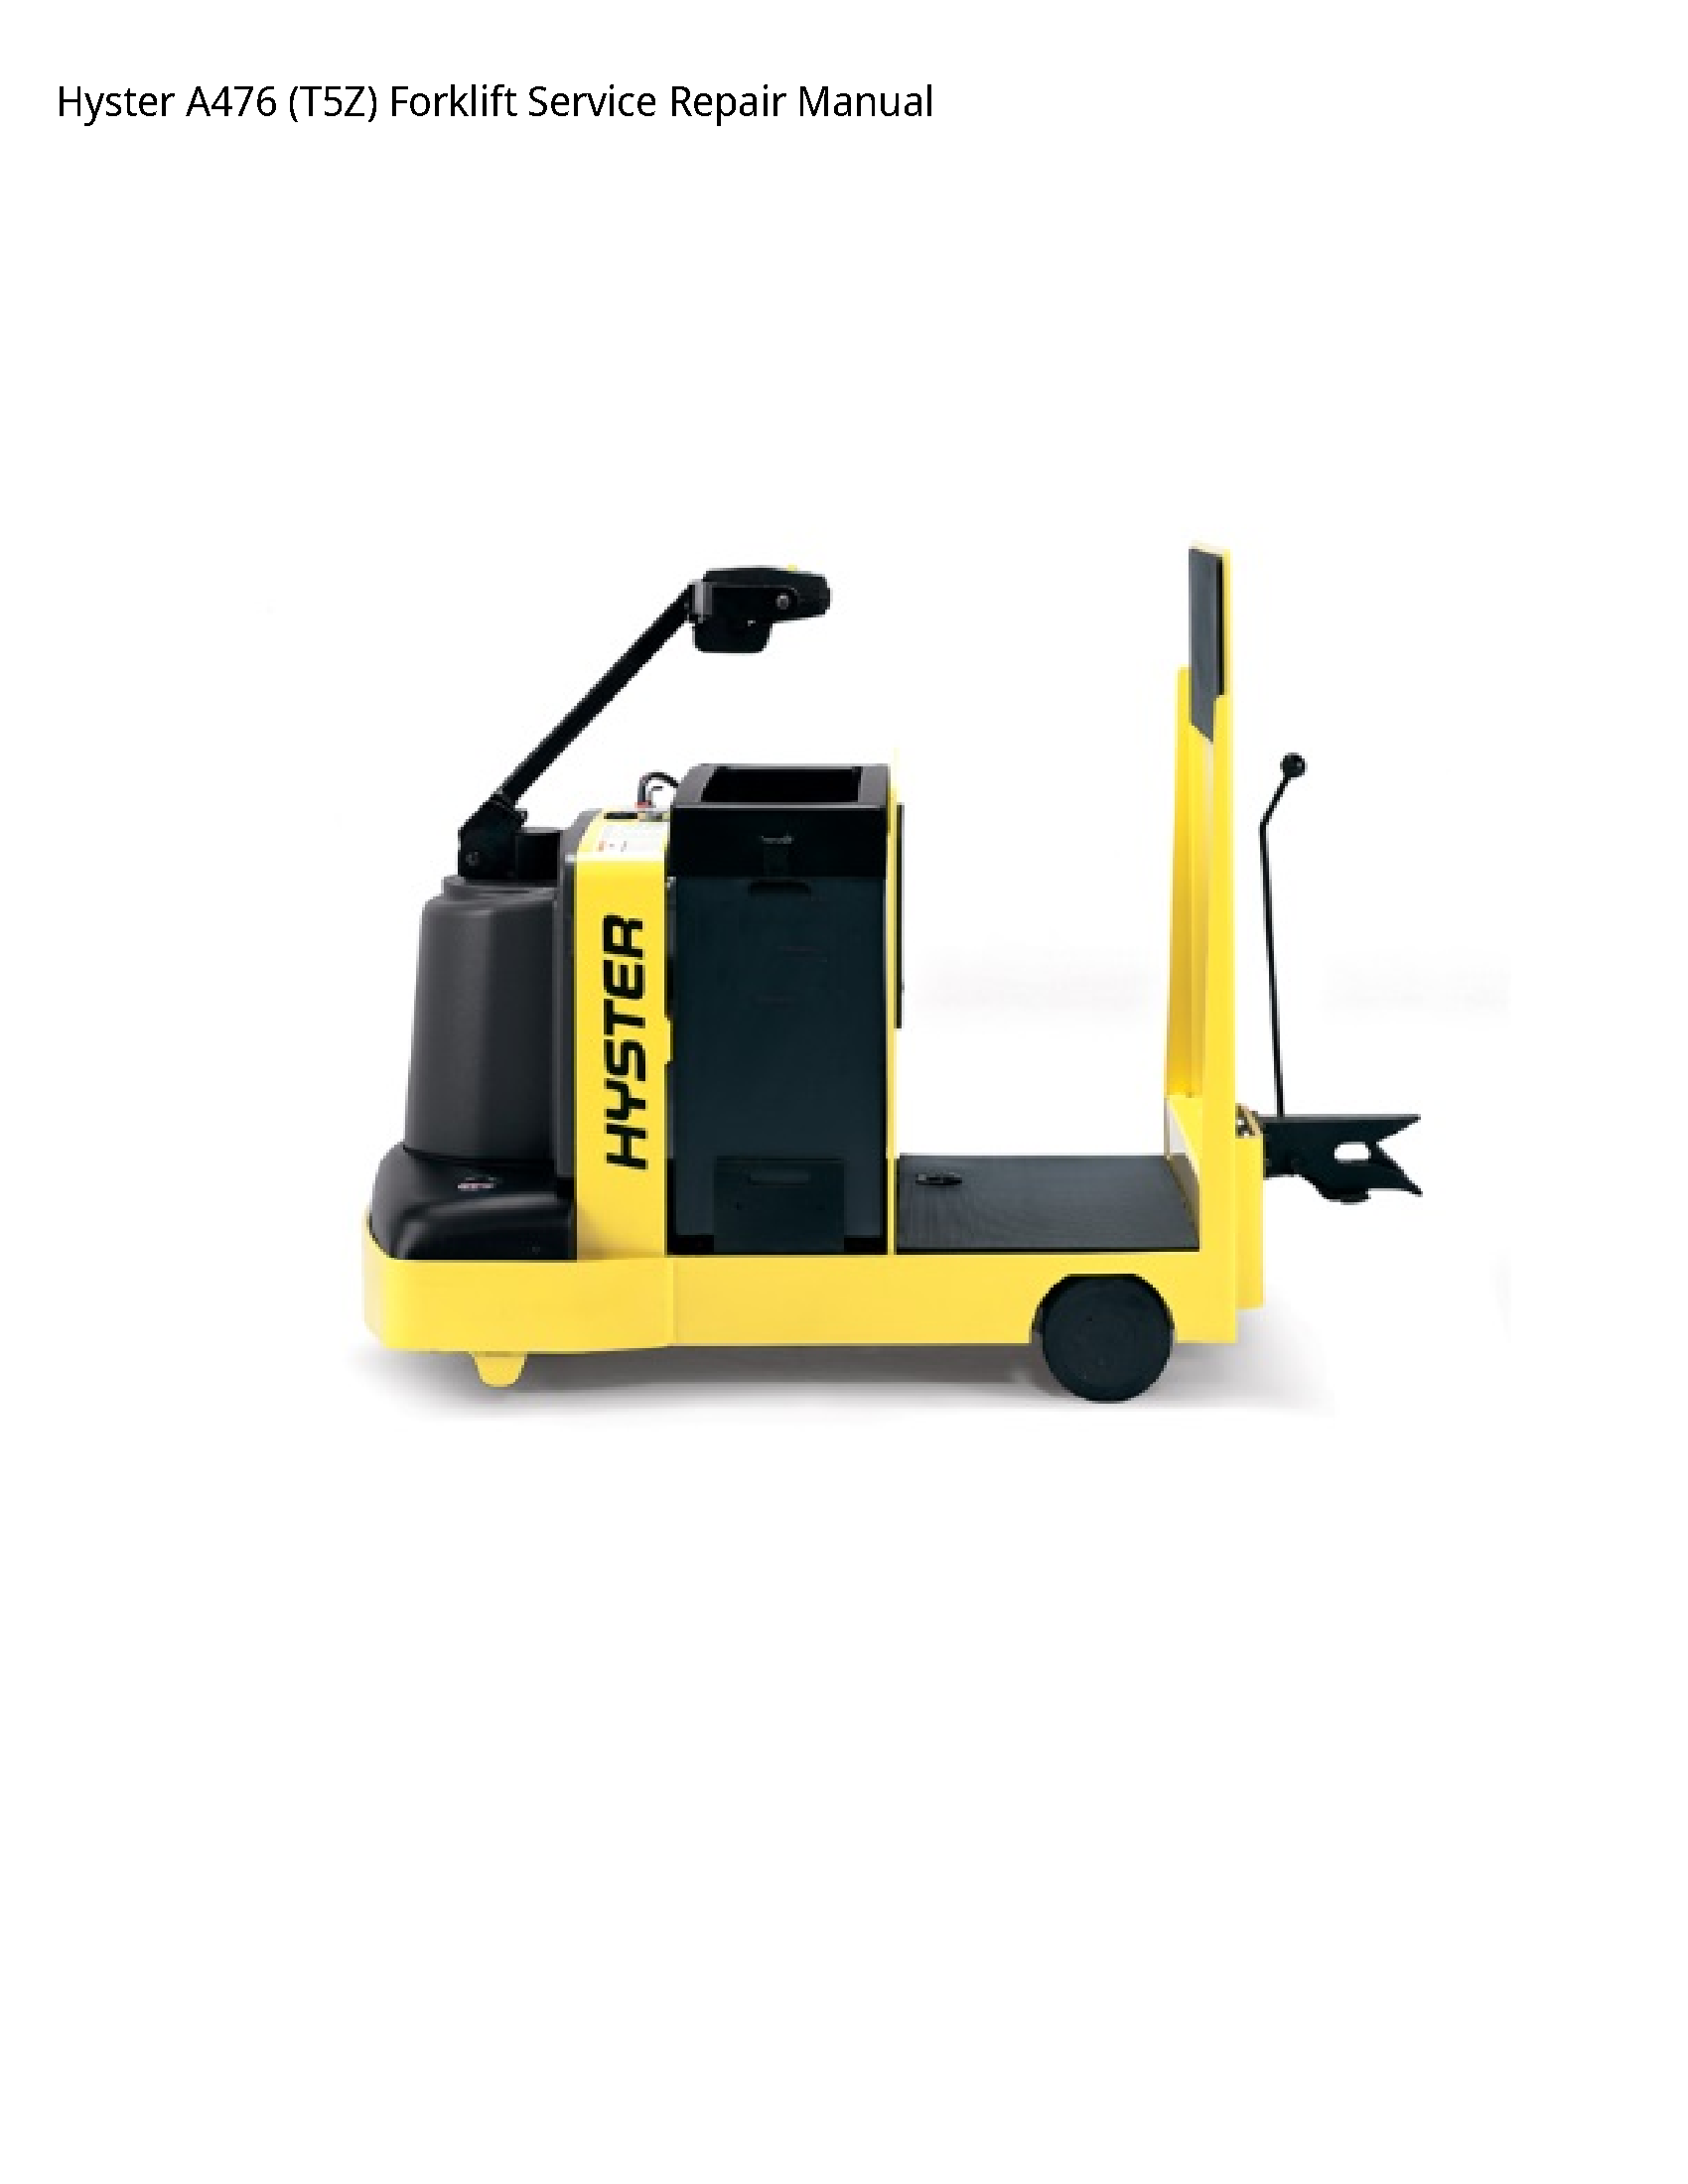 Hyster A476 Forklift manual